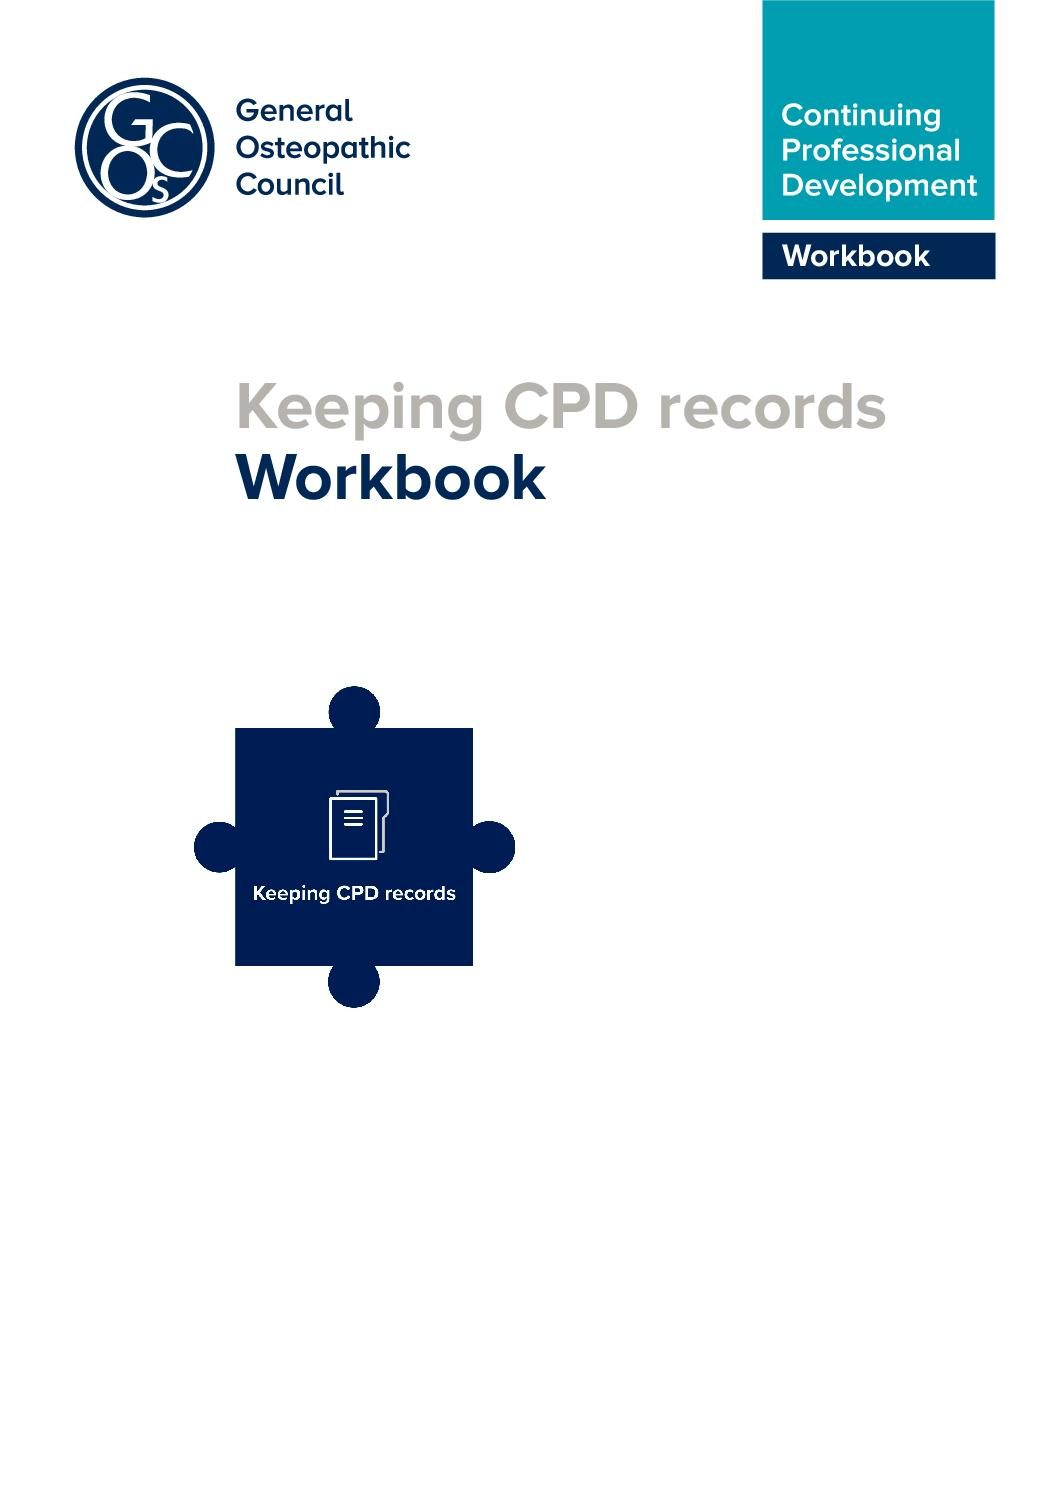 Keeping your CPD records Workbook